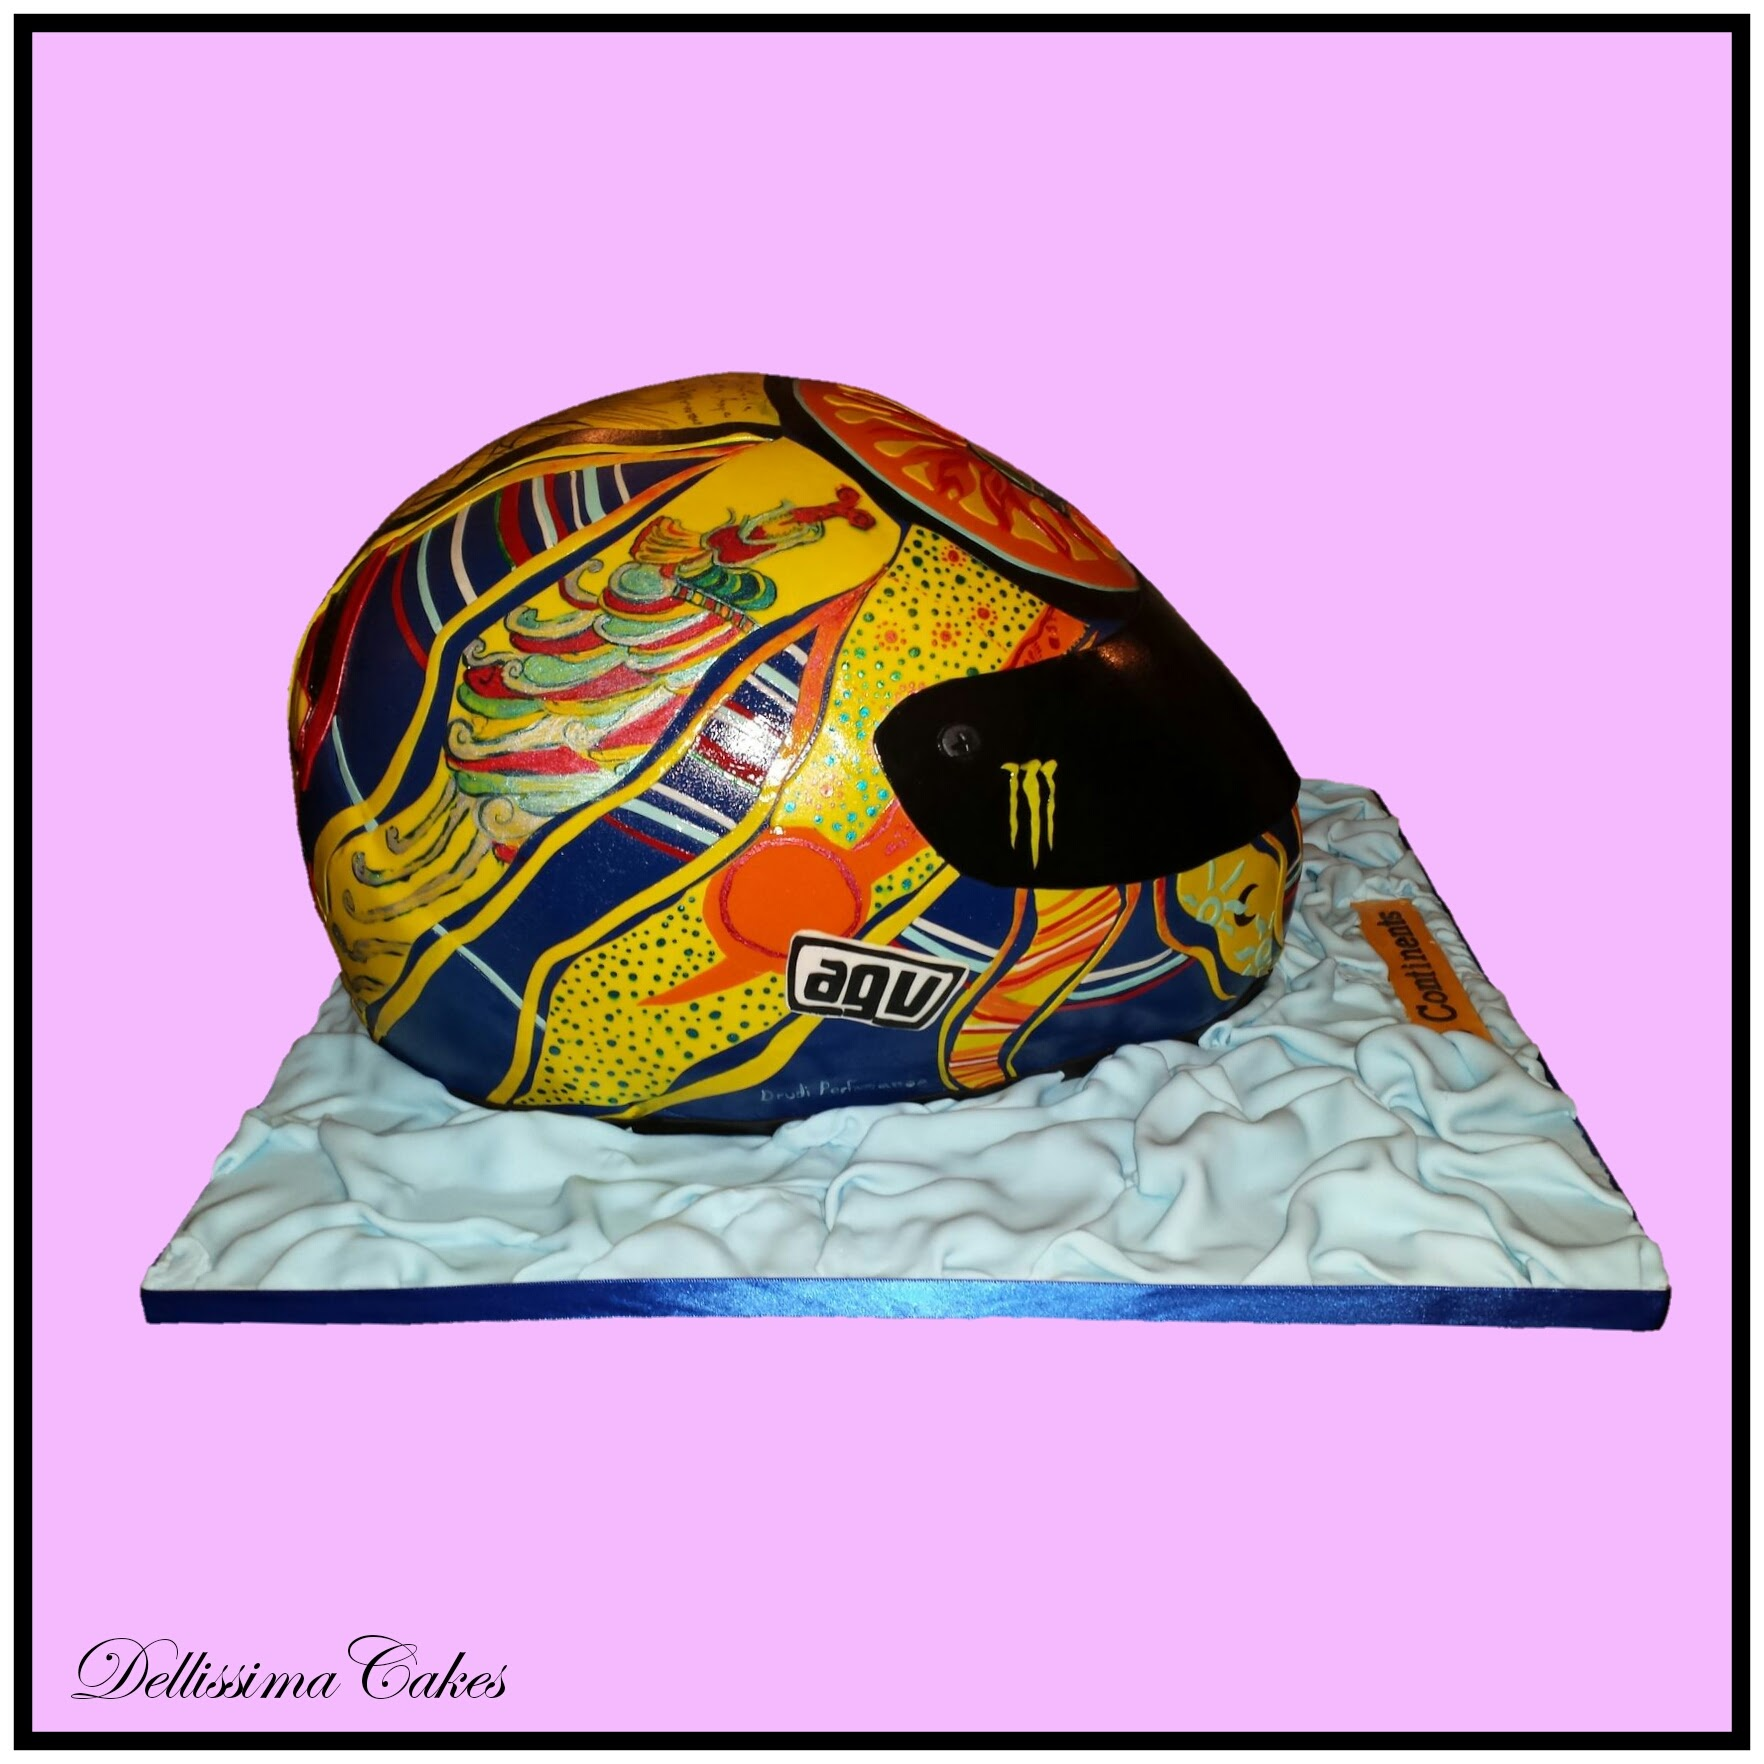 Valentino Rossi Helmet Cake 5-Continents 2.jpg